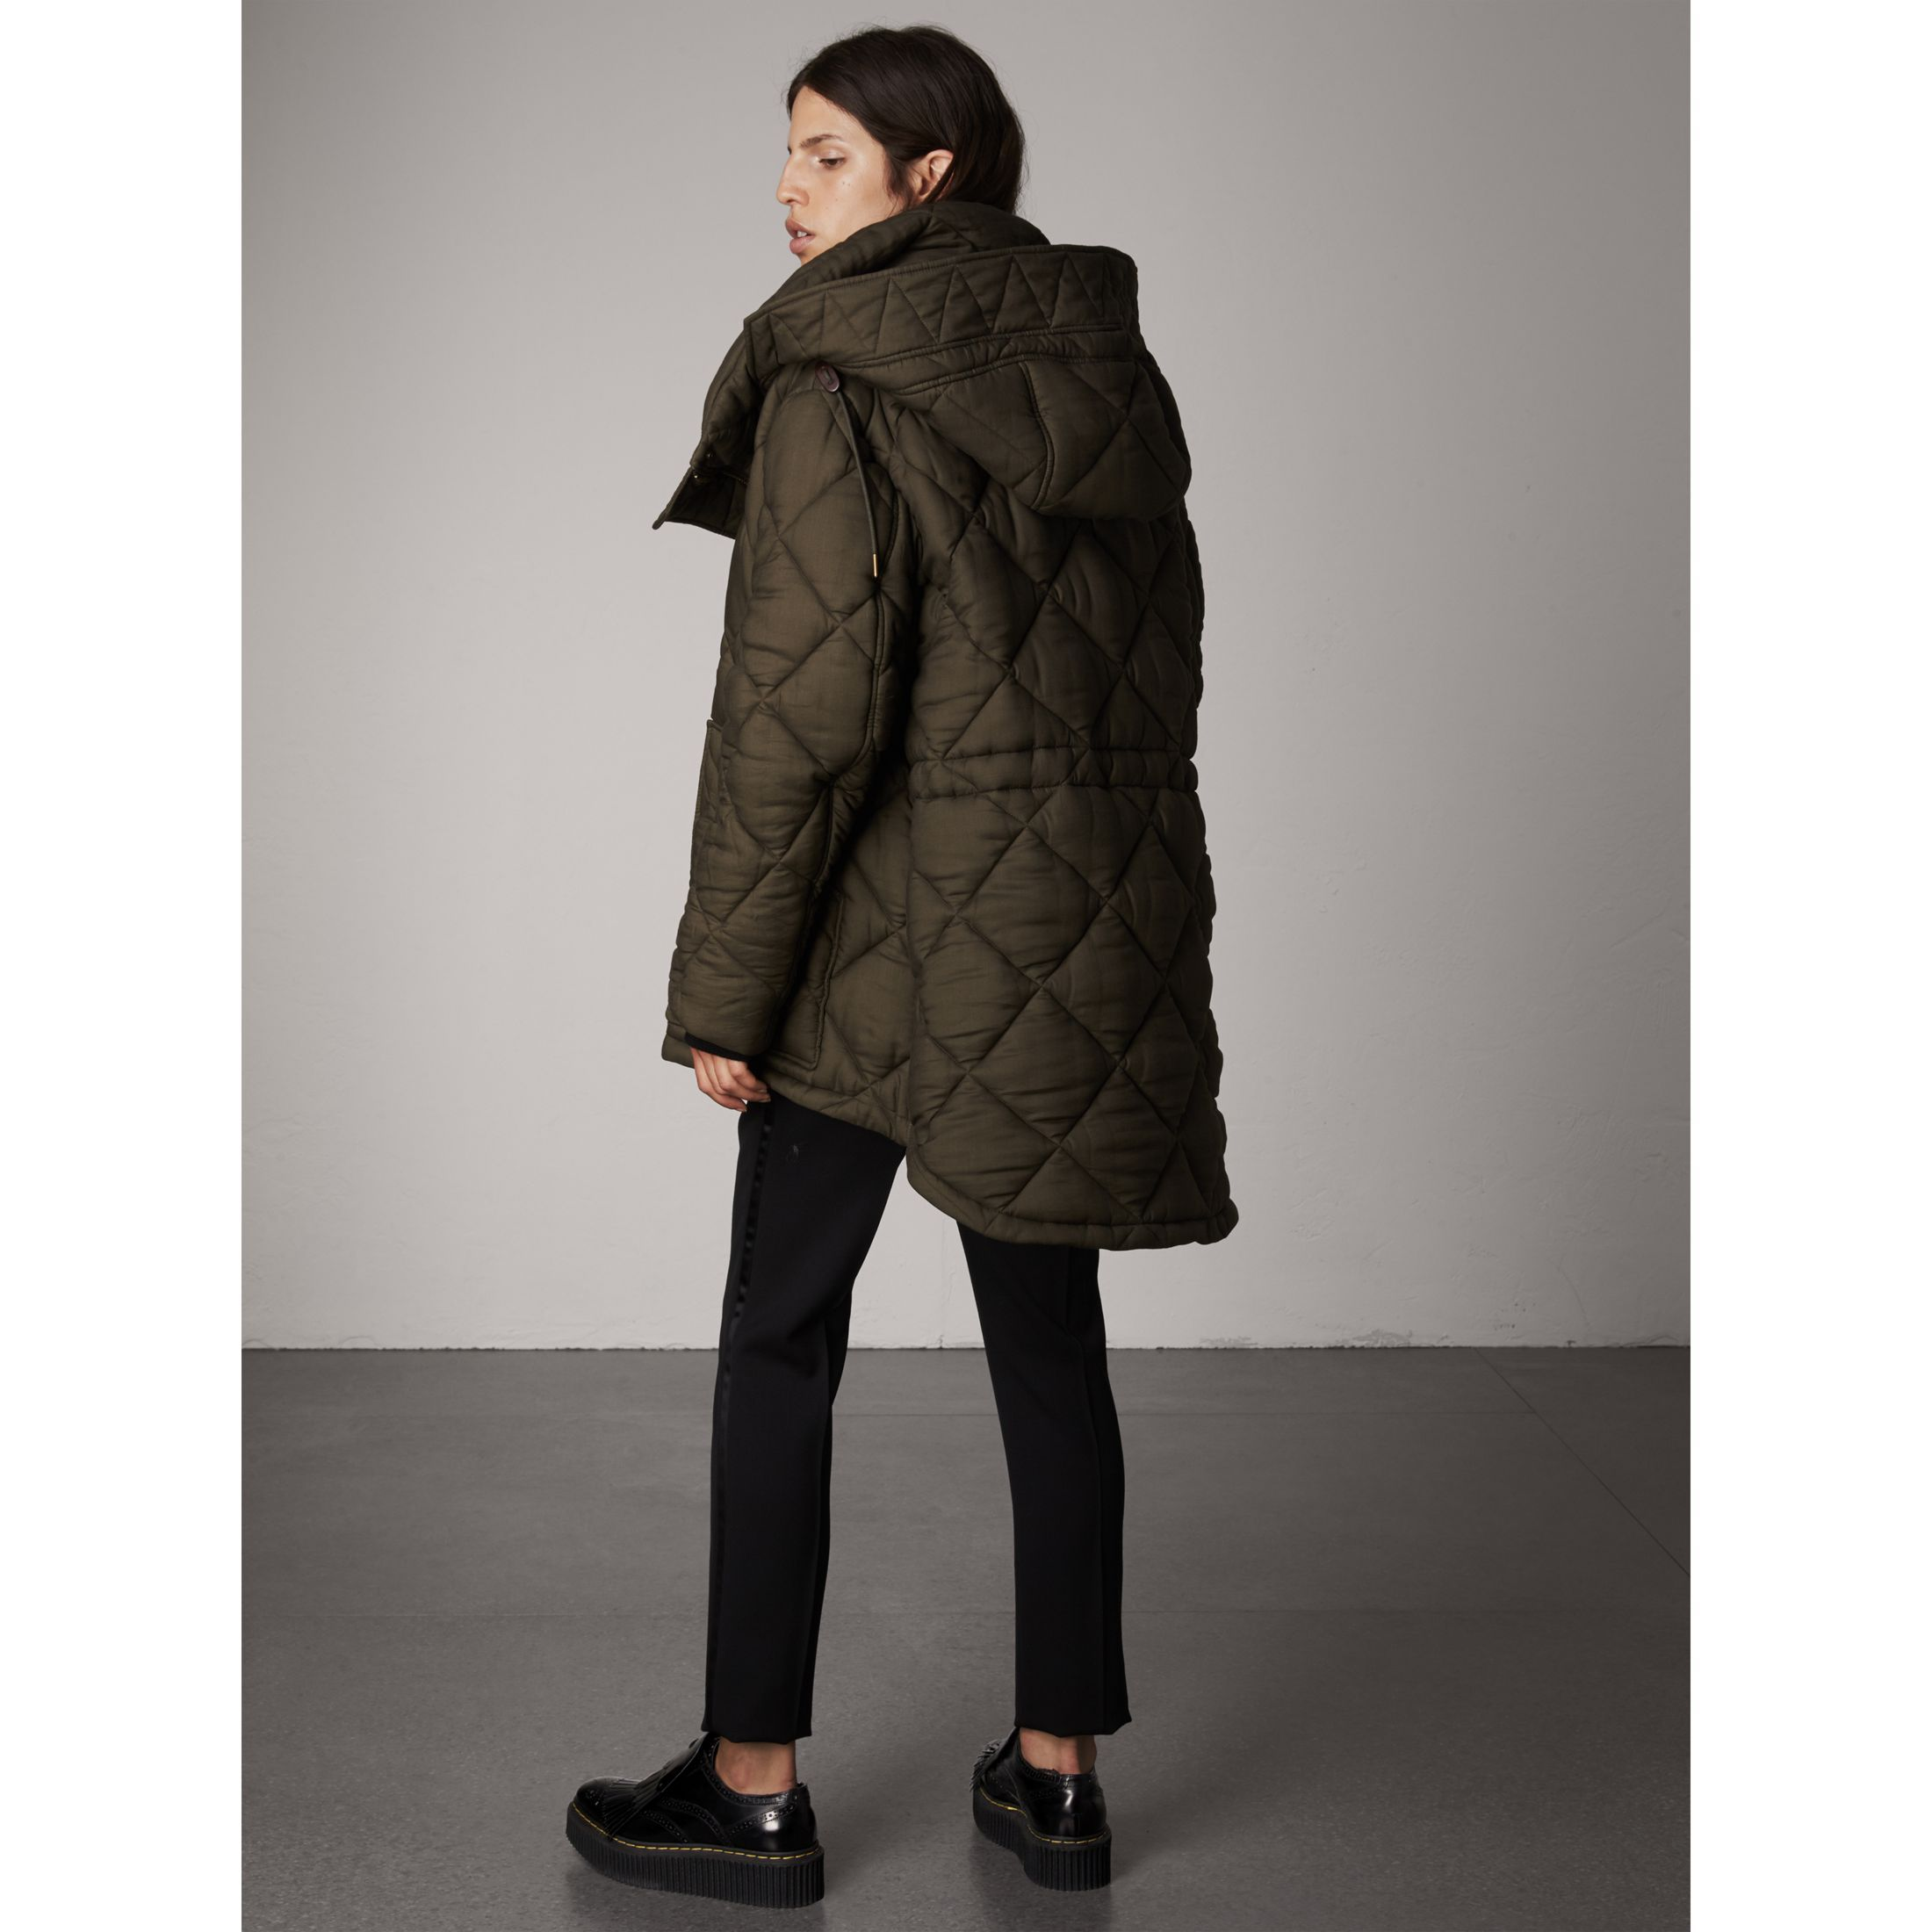 6ad2ef58cda32 Detachable Hood Oversized Quilted Jacket in Olive - Women   Burberry ...